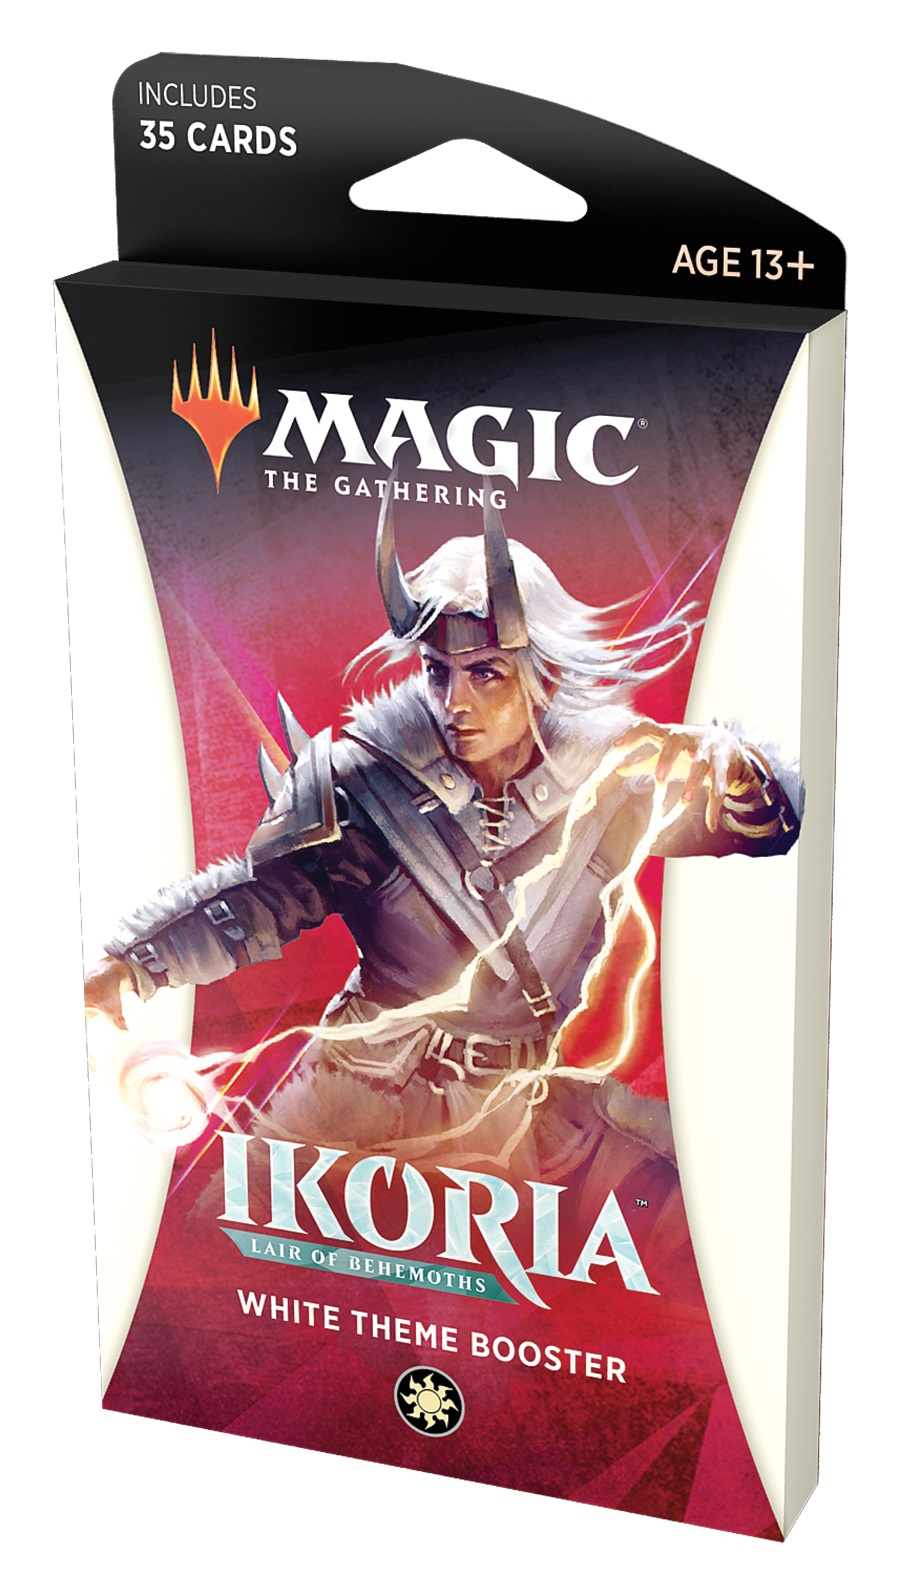 Ikoria: Lair of Behemoths Theme Booster - White